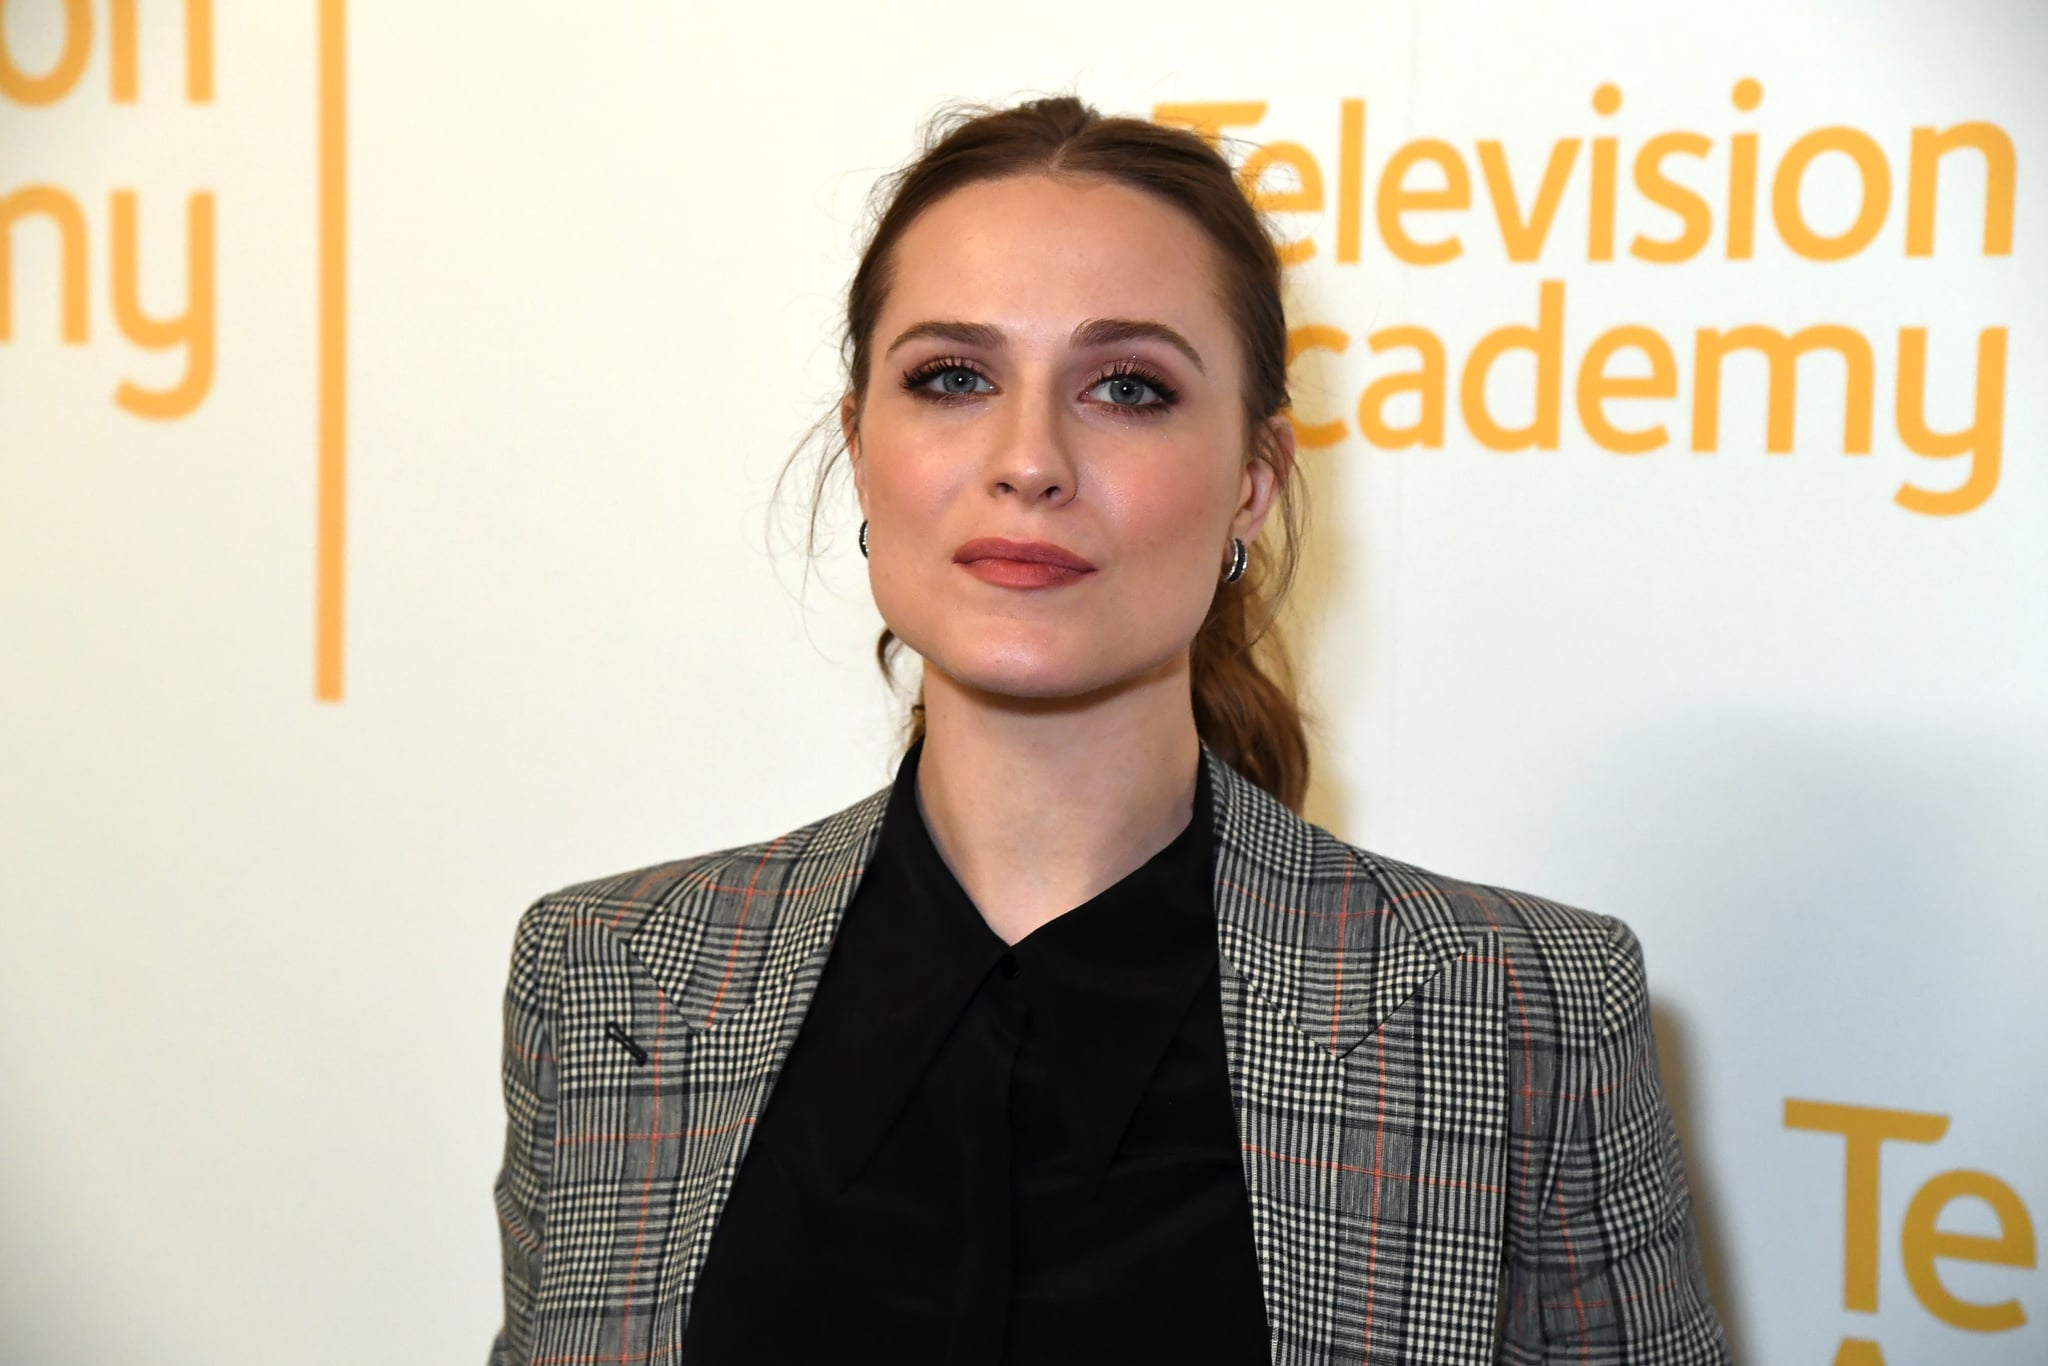 NORTH HOLLYWOOD, CALIFORNIA - MARCH 06: Evan Rachel Wood attends the screening & panel discussion of the HBO drama series